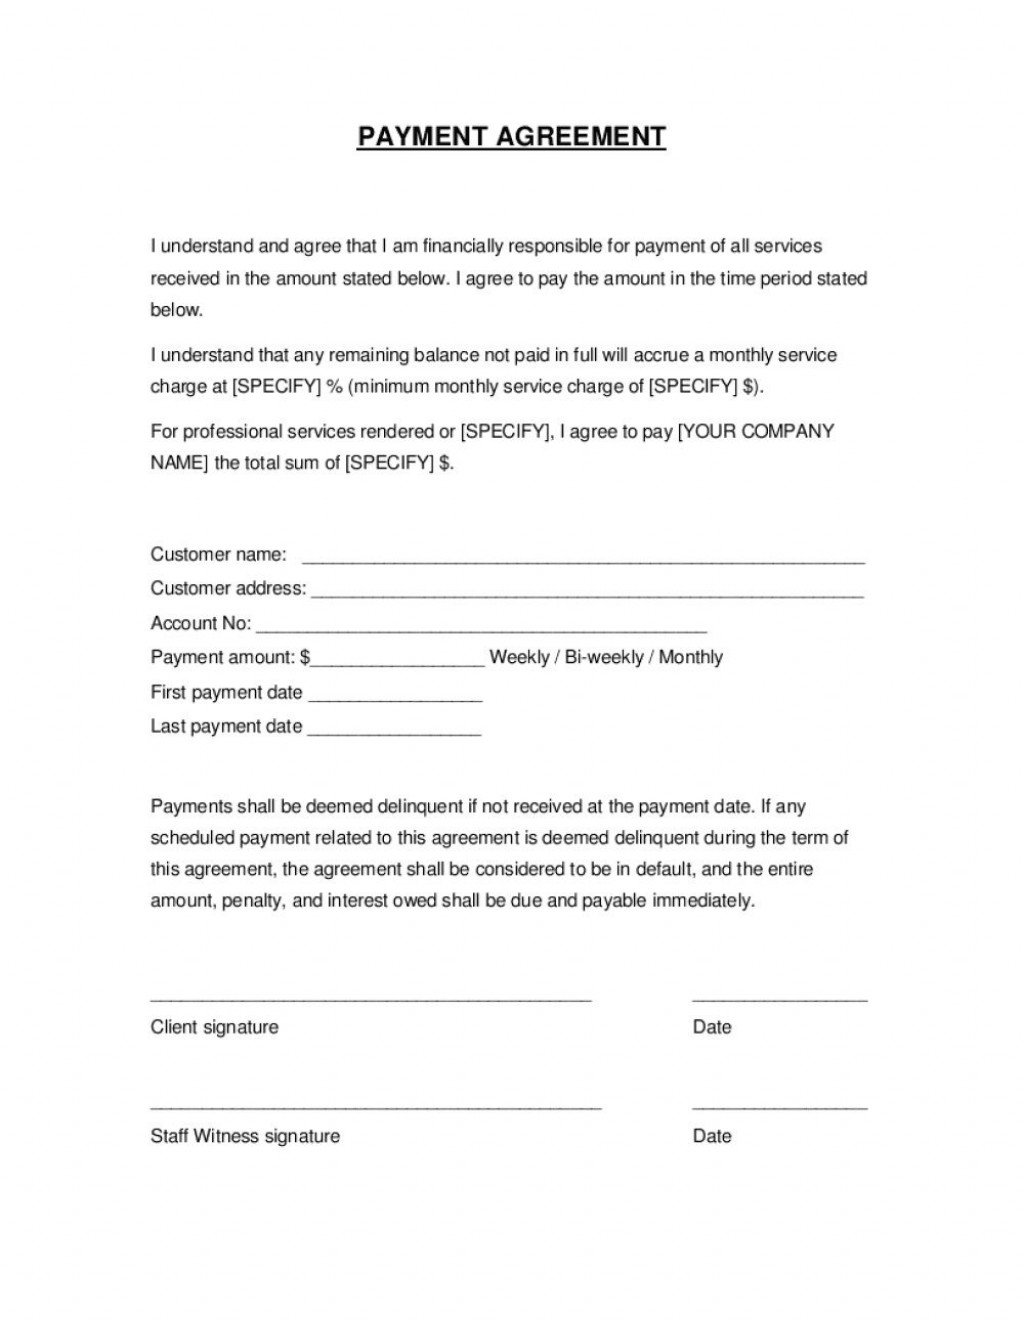 003 Wonderful Installment Payment Contract Template High Definition  Car Agreement Simple MonthlyLarge